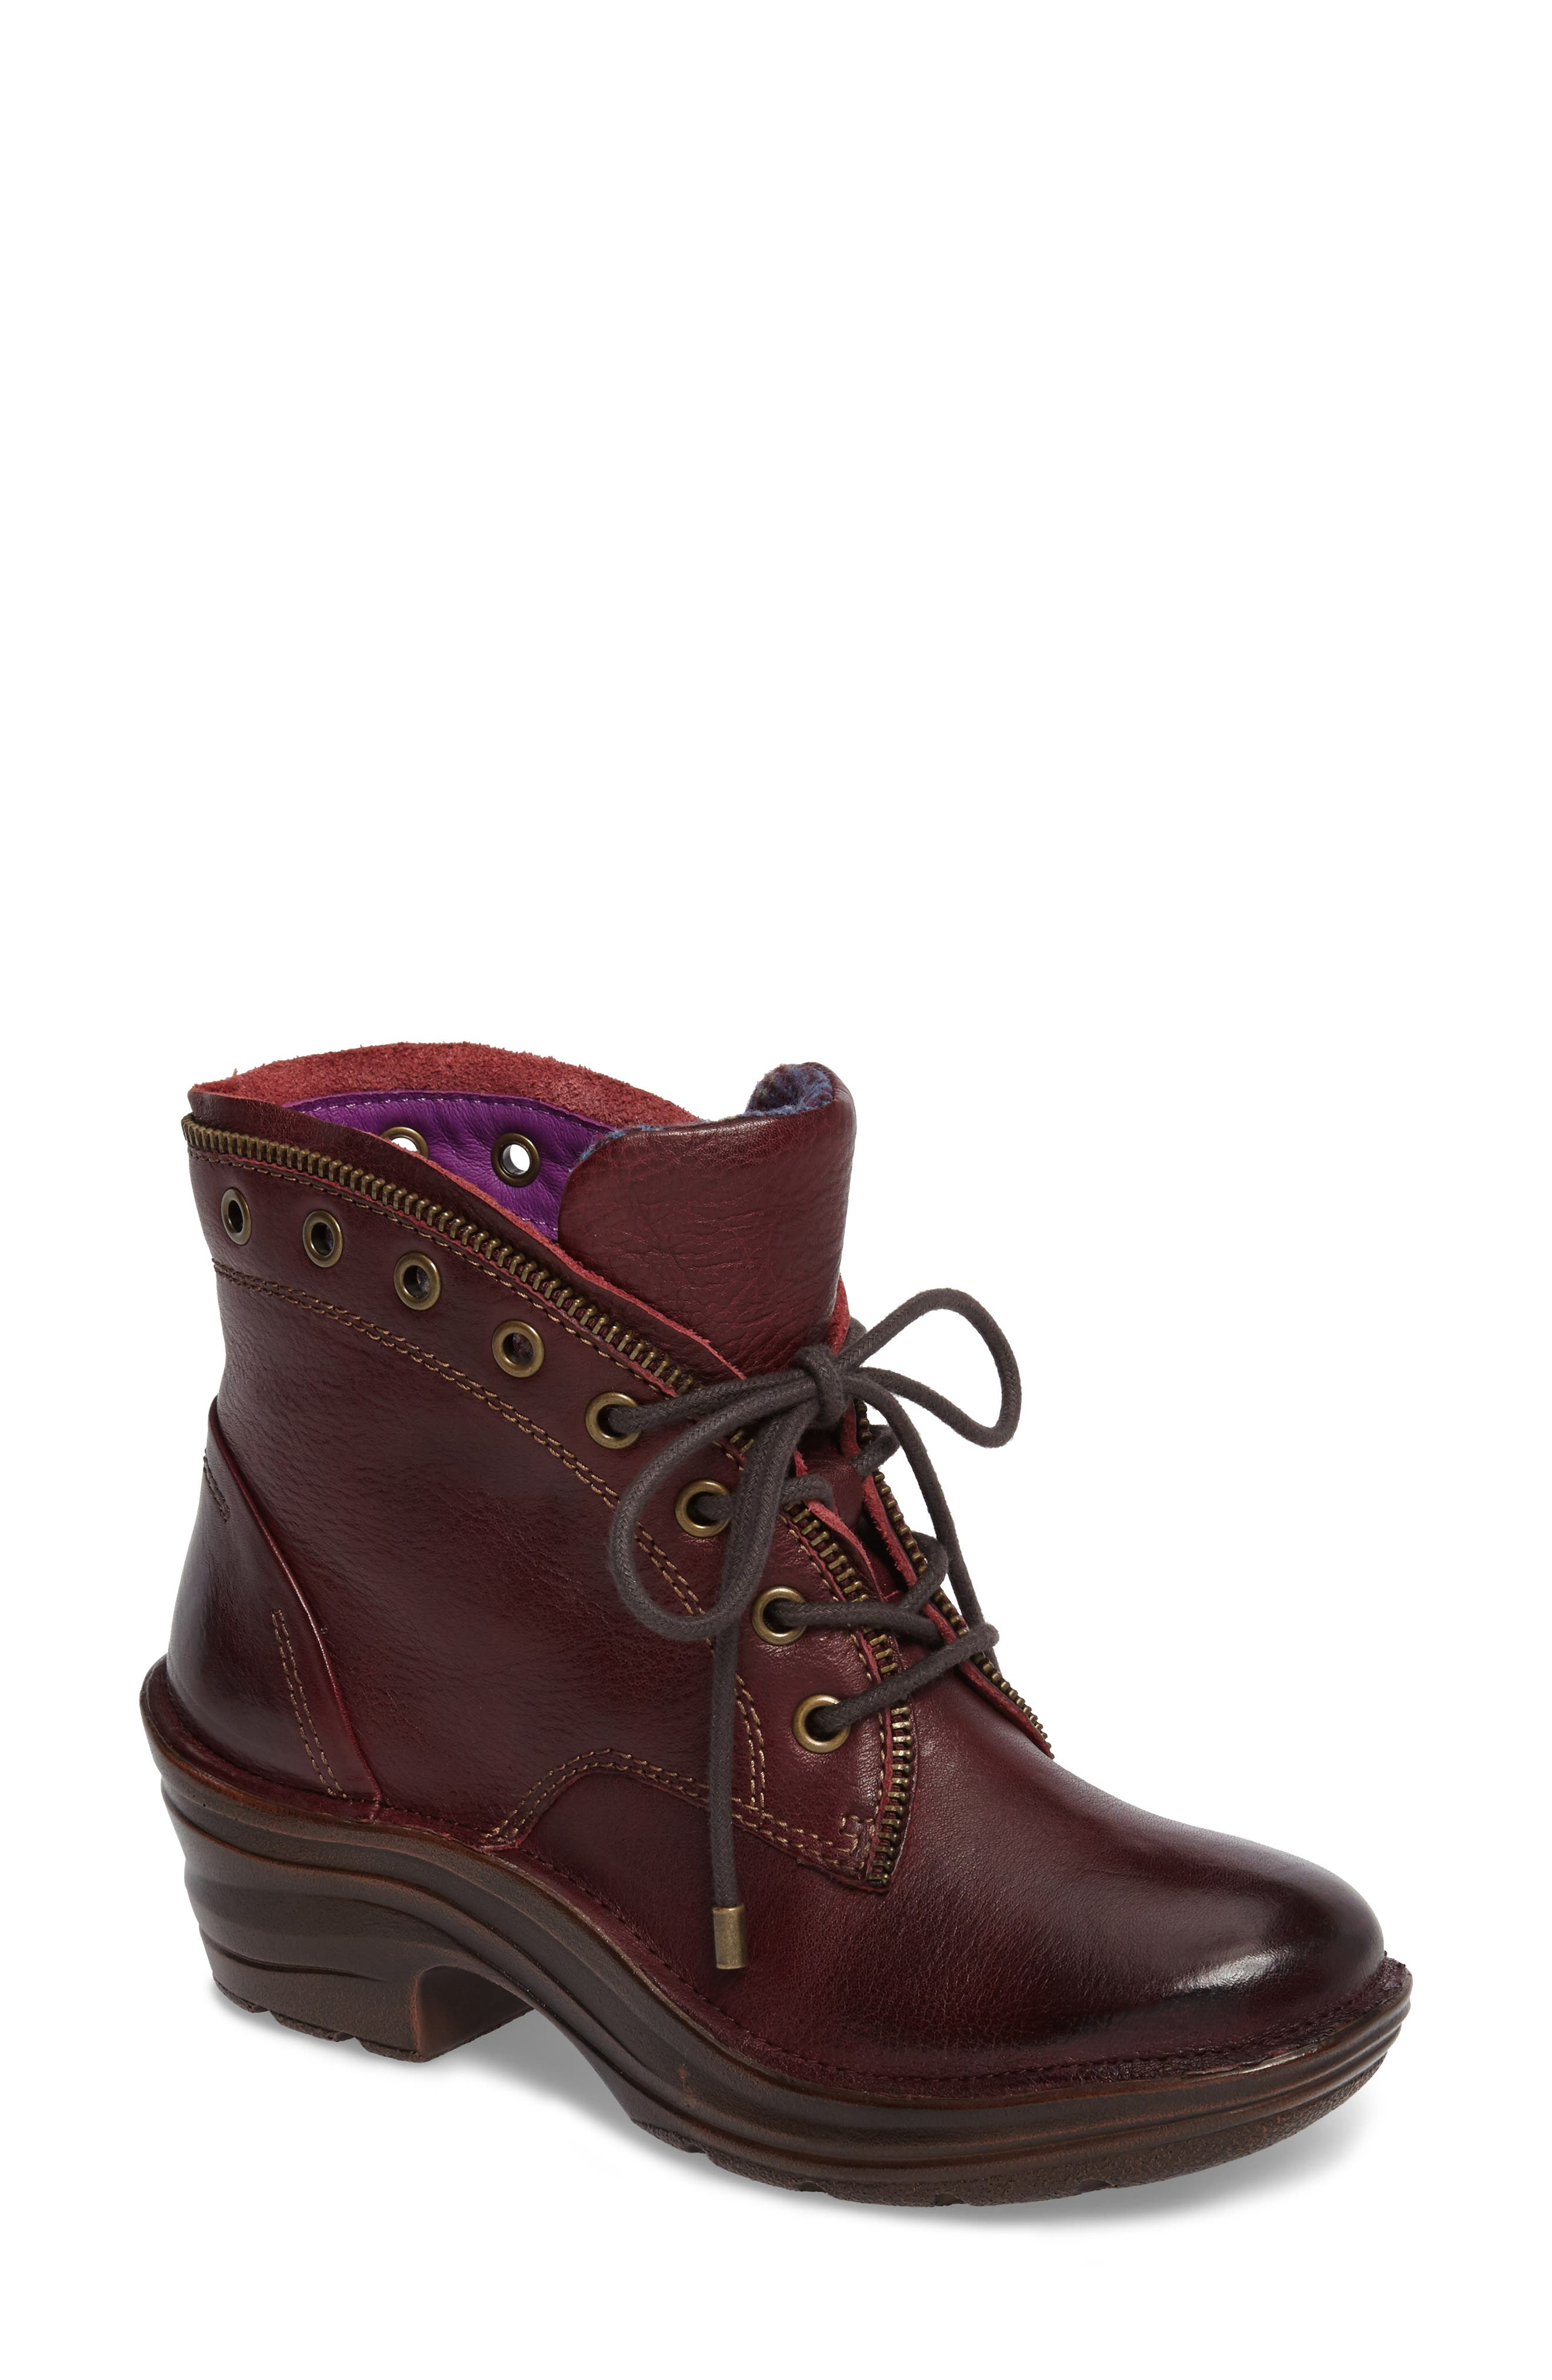 Alternate Image 1 Selected - bionica Rangely Boot (Women)